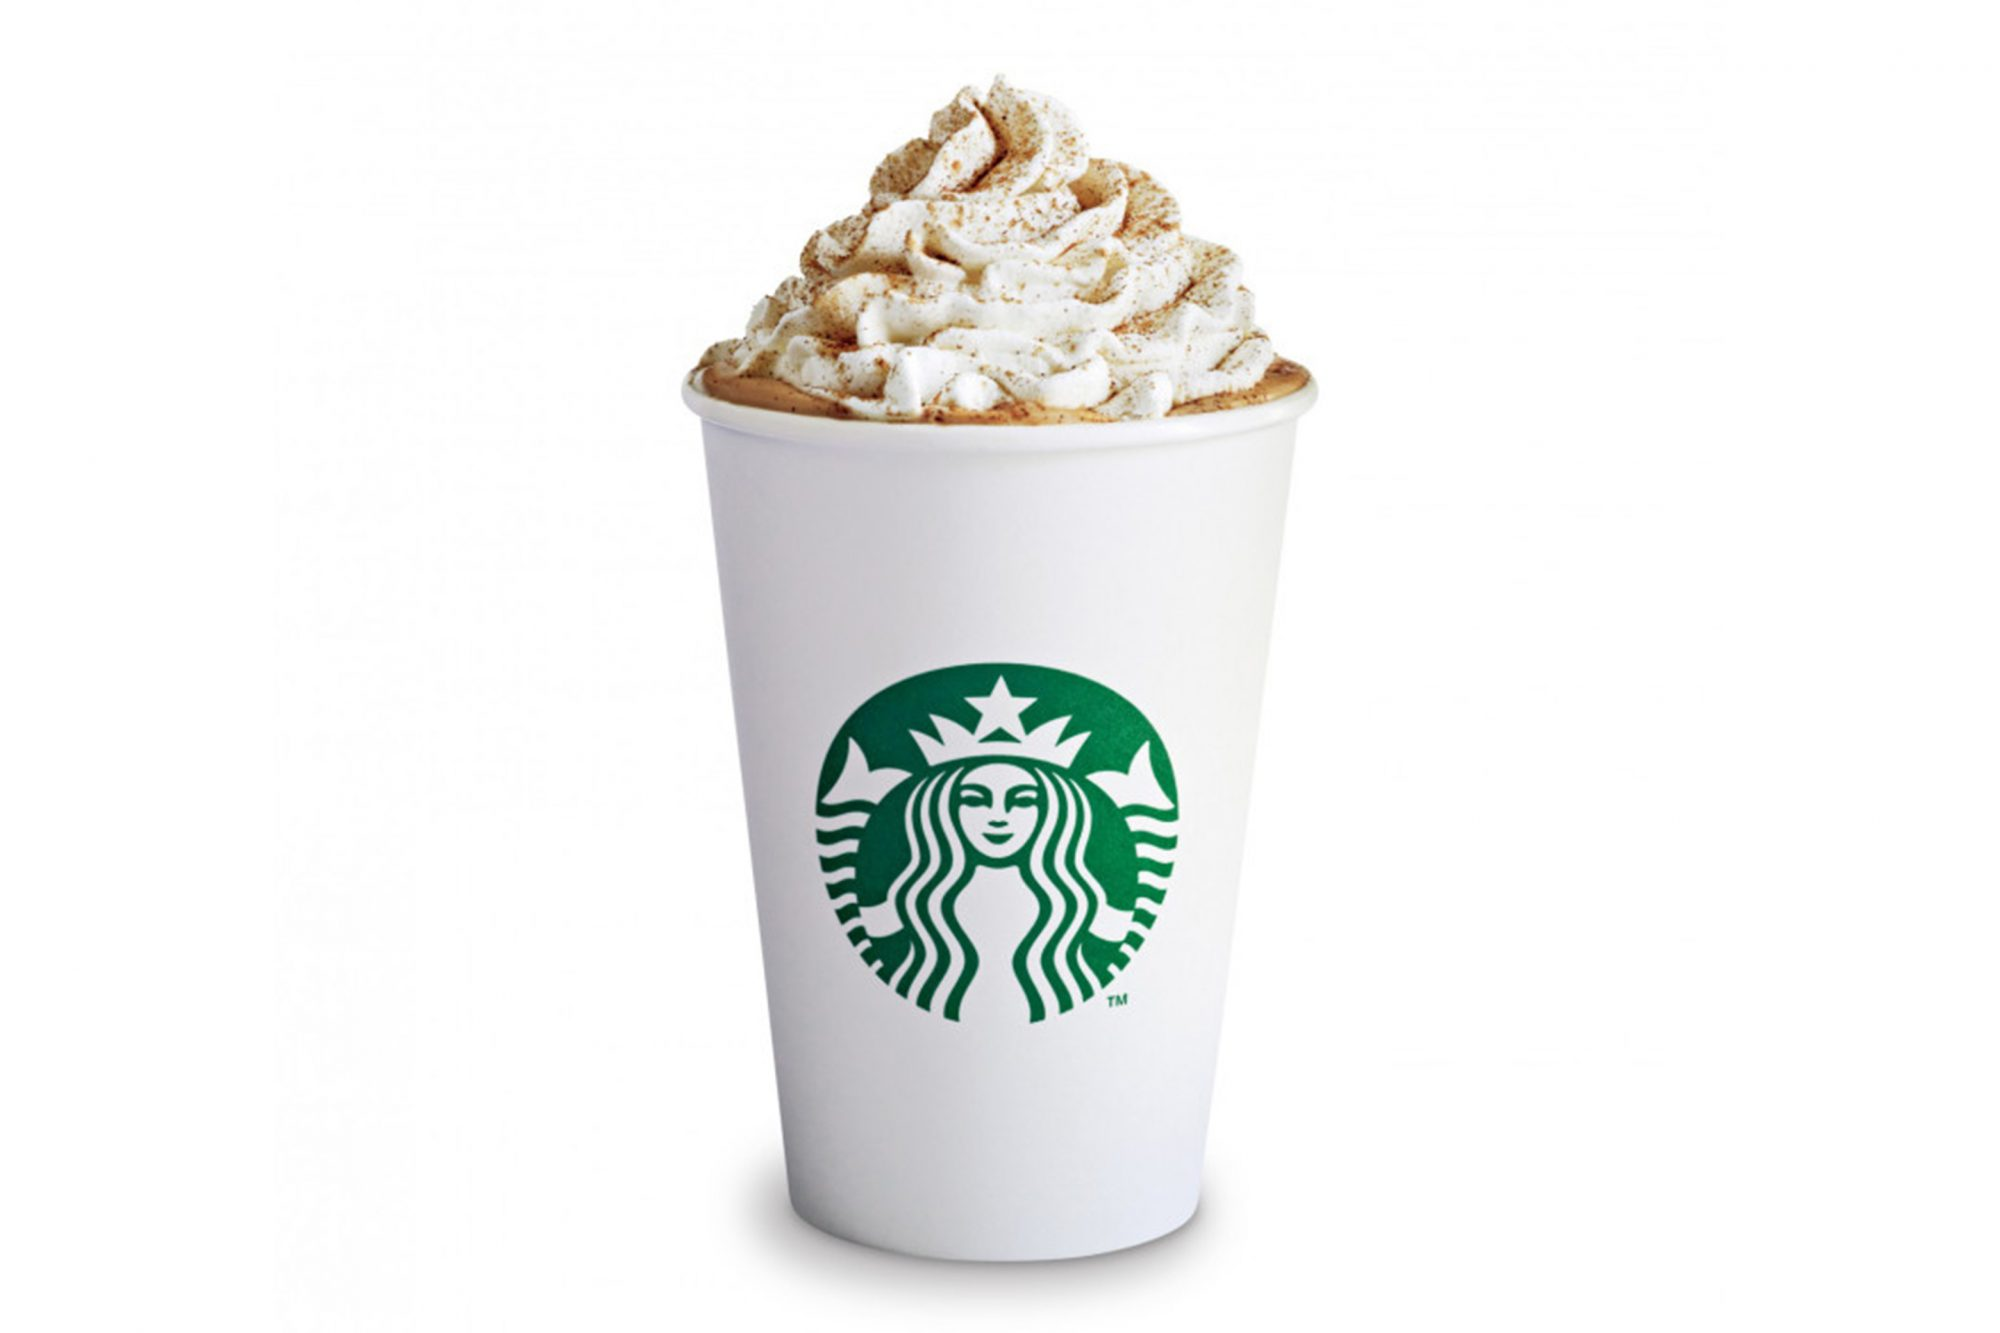 Brace Yourself. Starbucks' Pumpkin Spice Lattes Appear Imminent